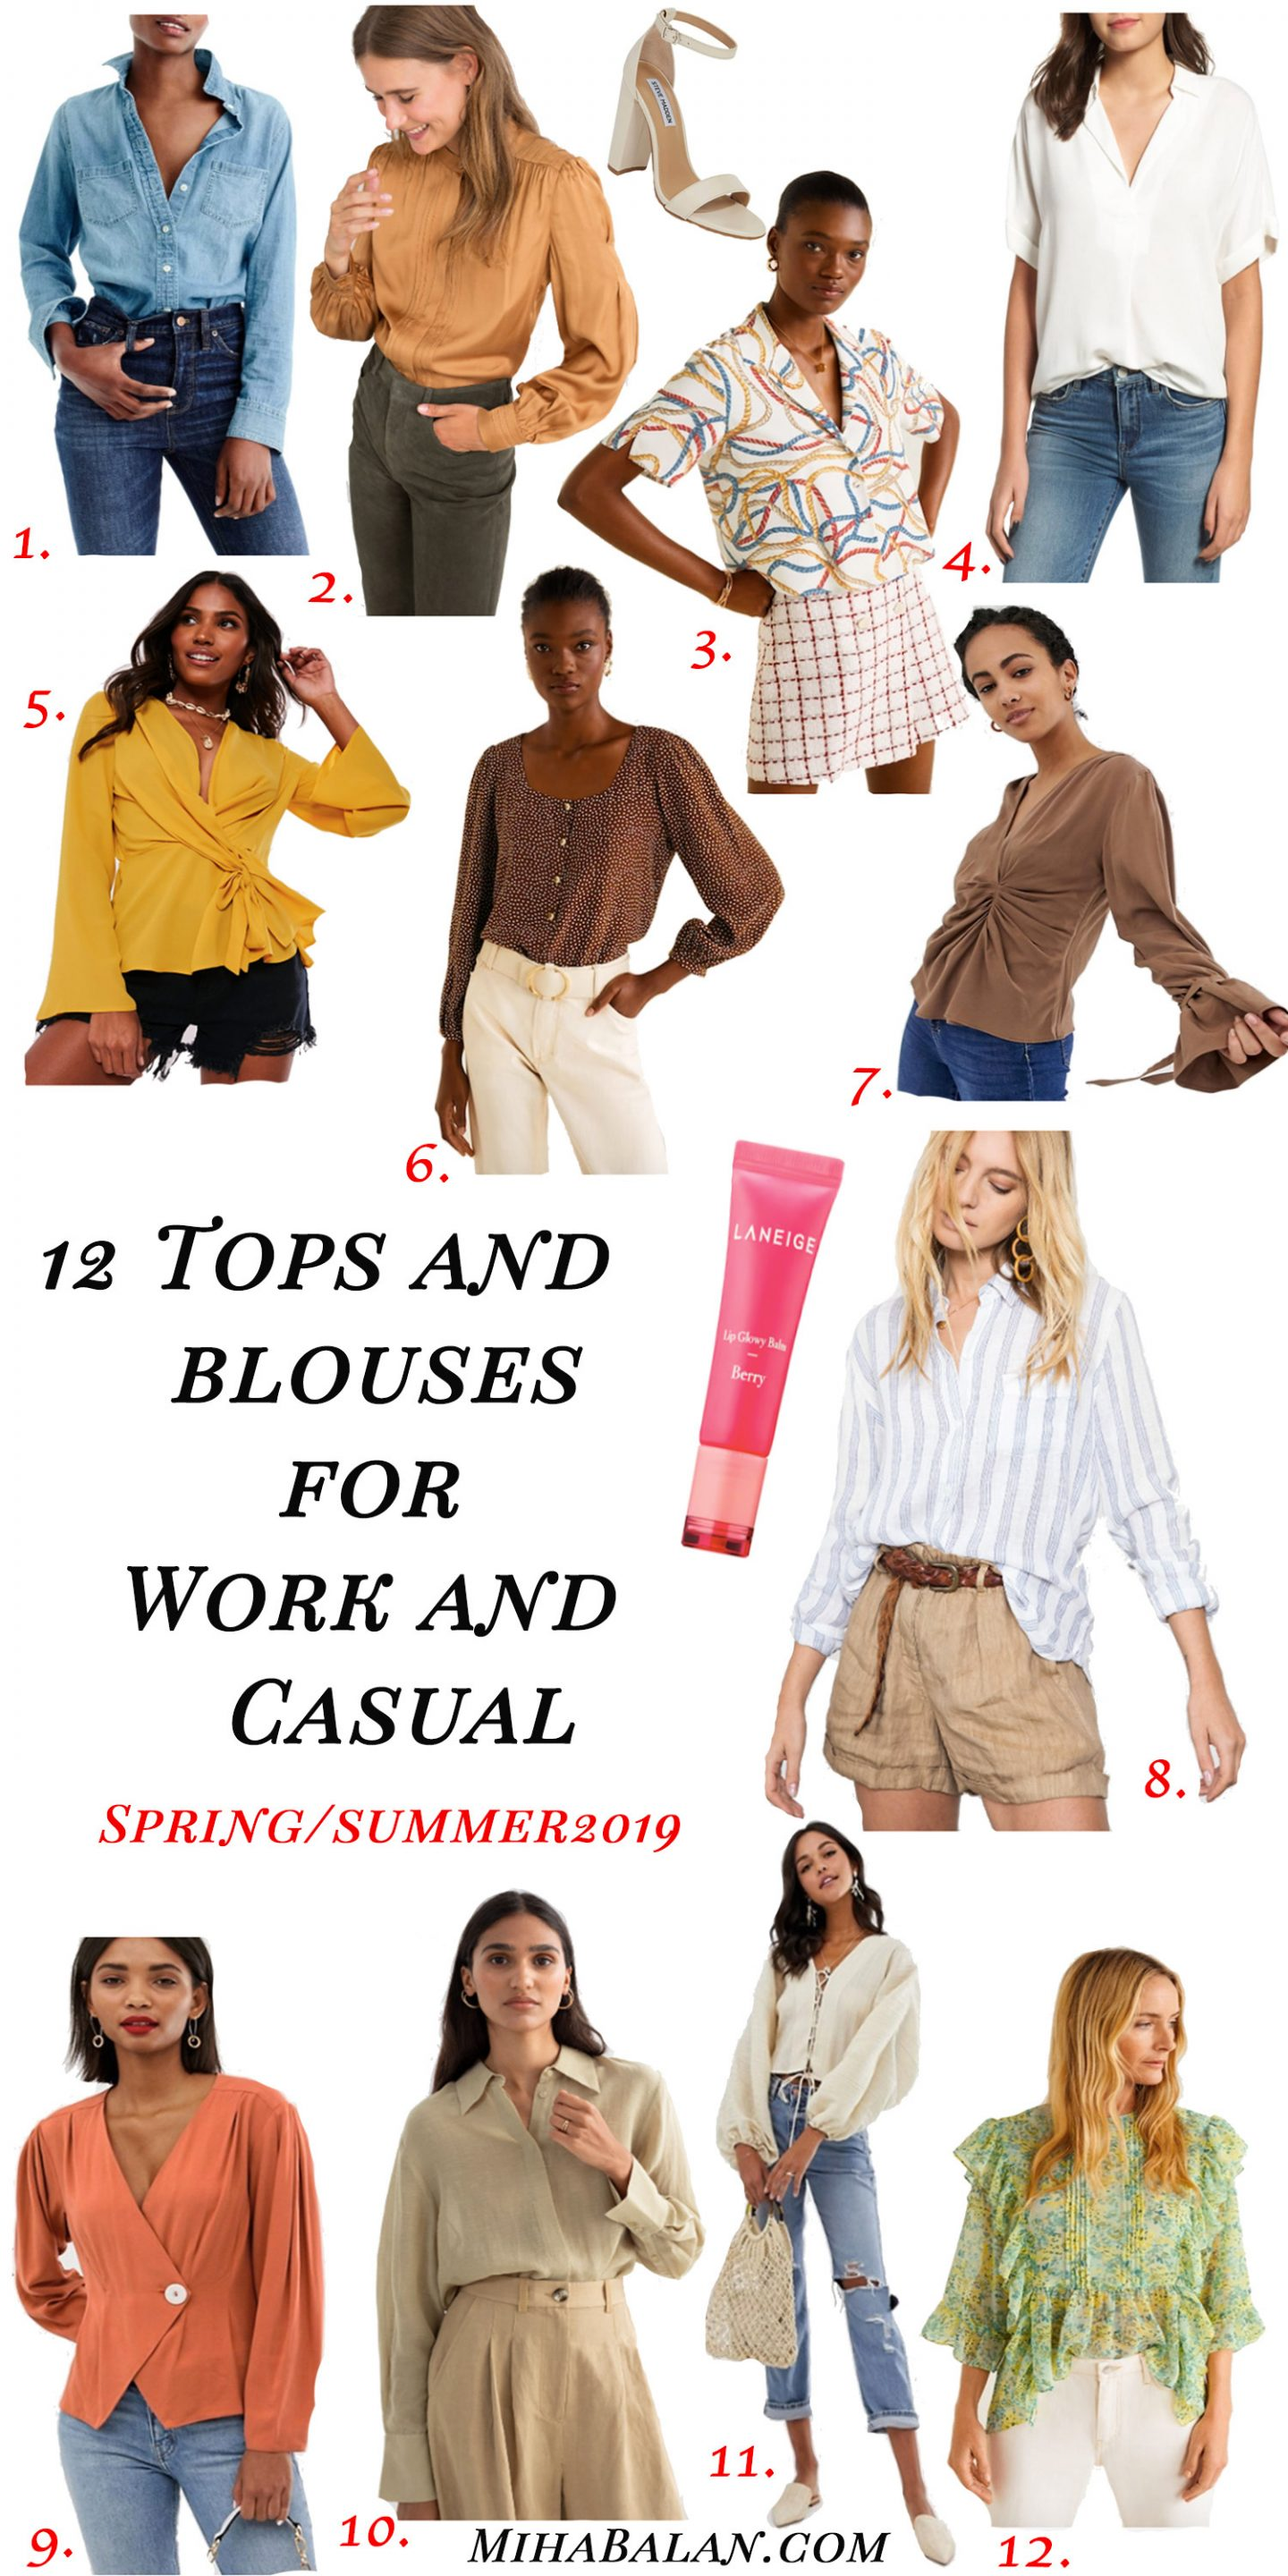 Tops-and-Blouses-for-work-and-casual-spring-and-summer-2019-outfit-ideas-pretty-tops-women-blouses-women-fashion-2019